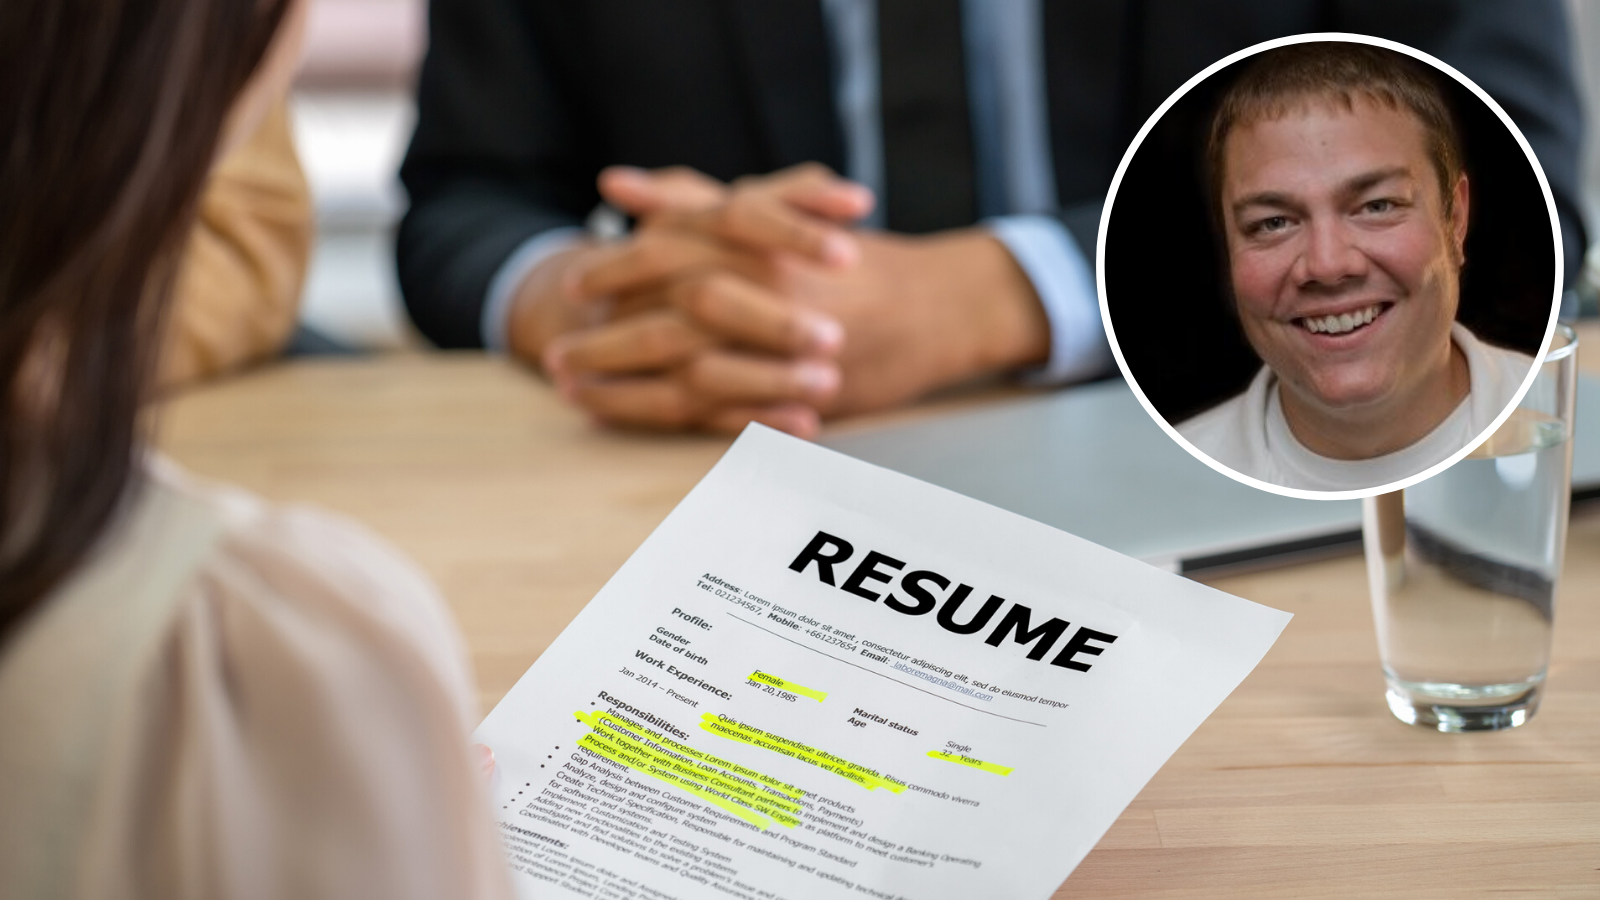 Resumé writer reveals 6 changes you need to make to bag the job